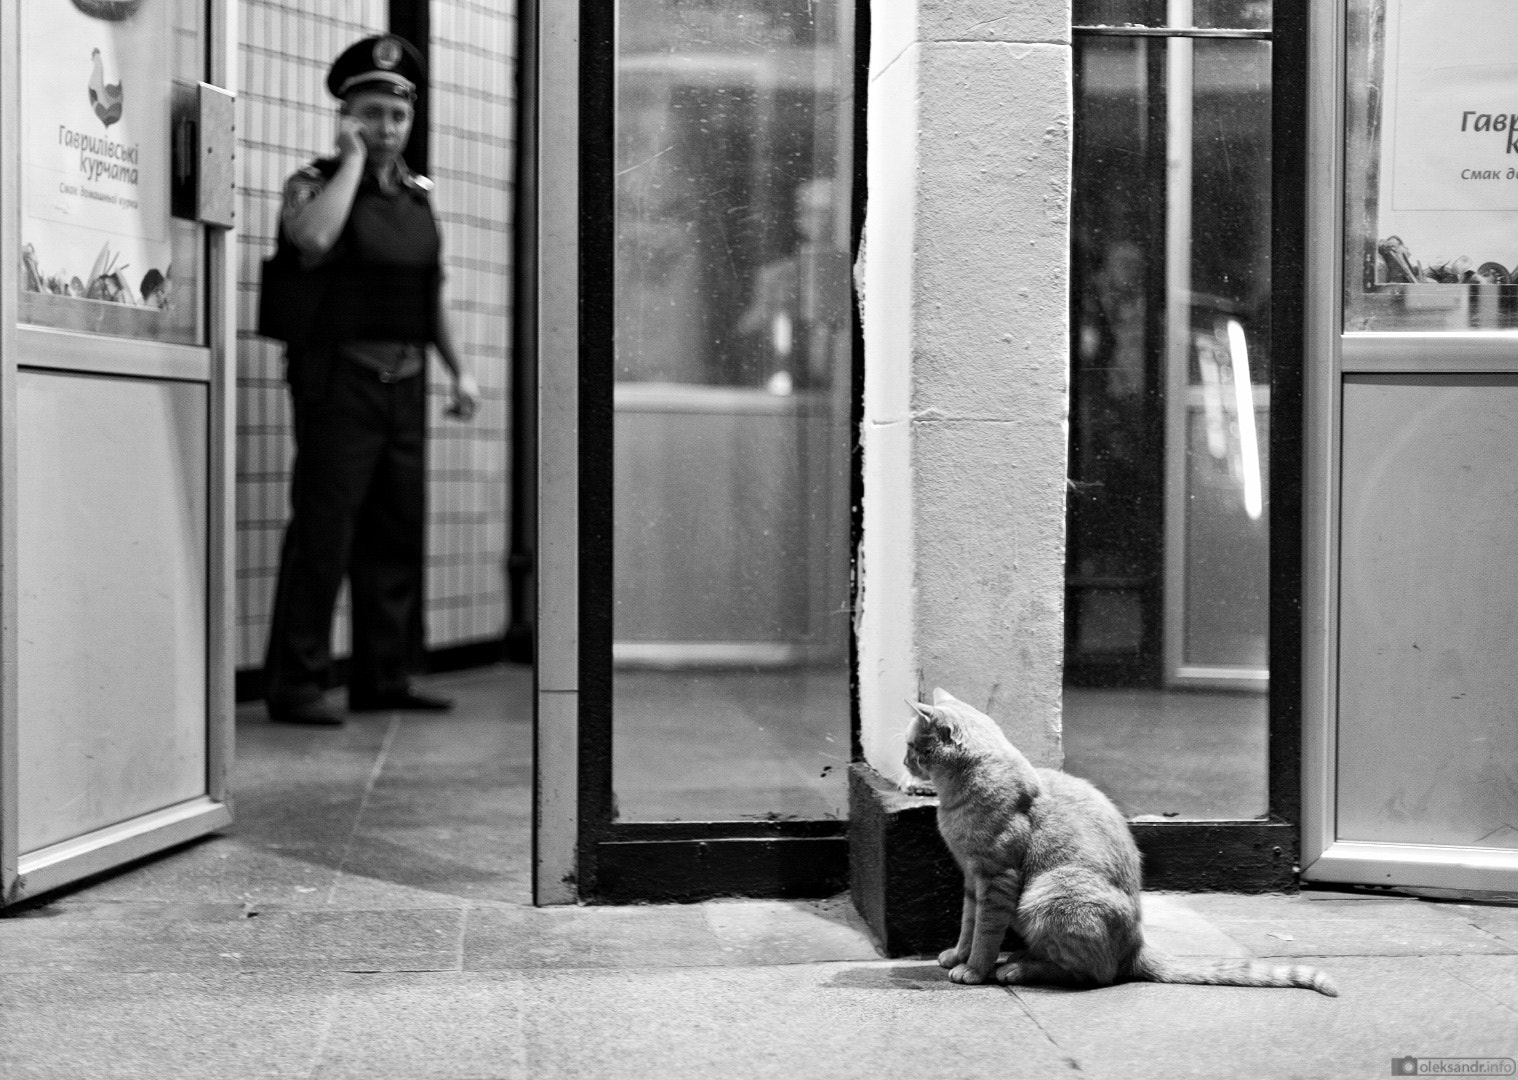 Photograph cat & cop. by Oleksandr Gontar on 500px